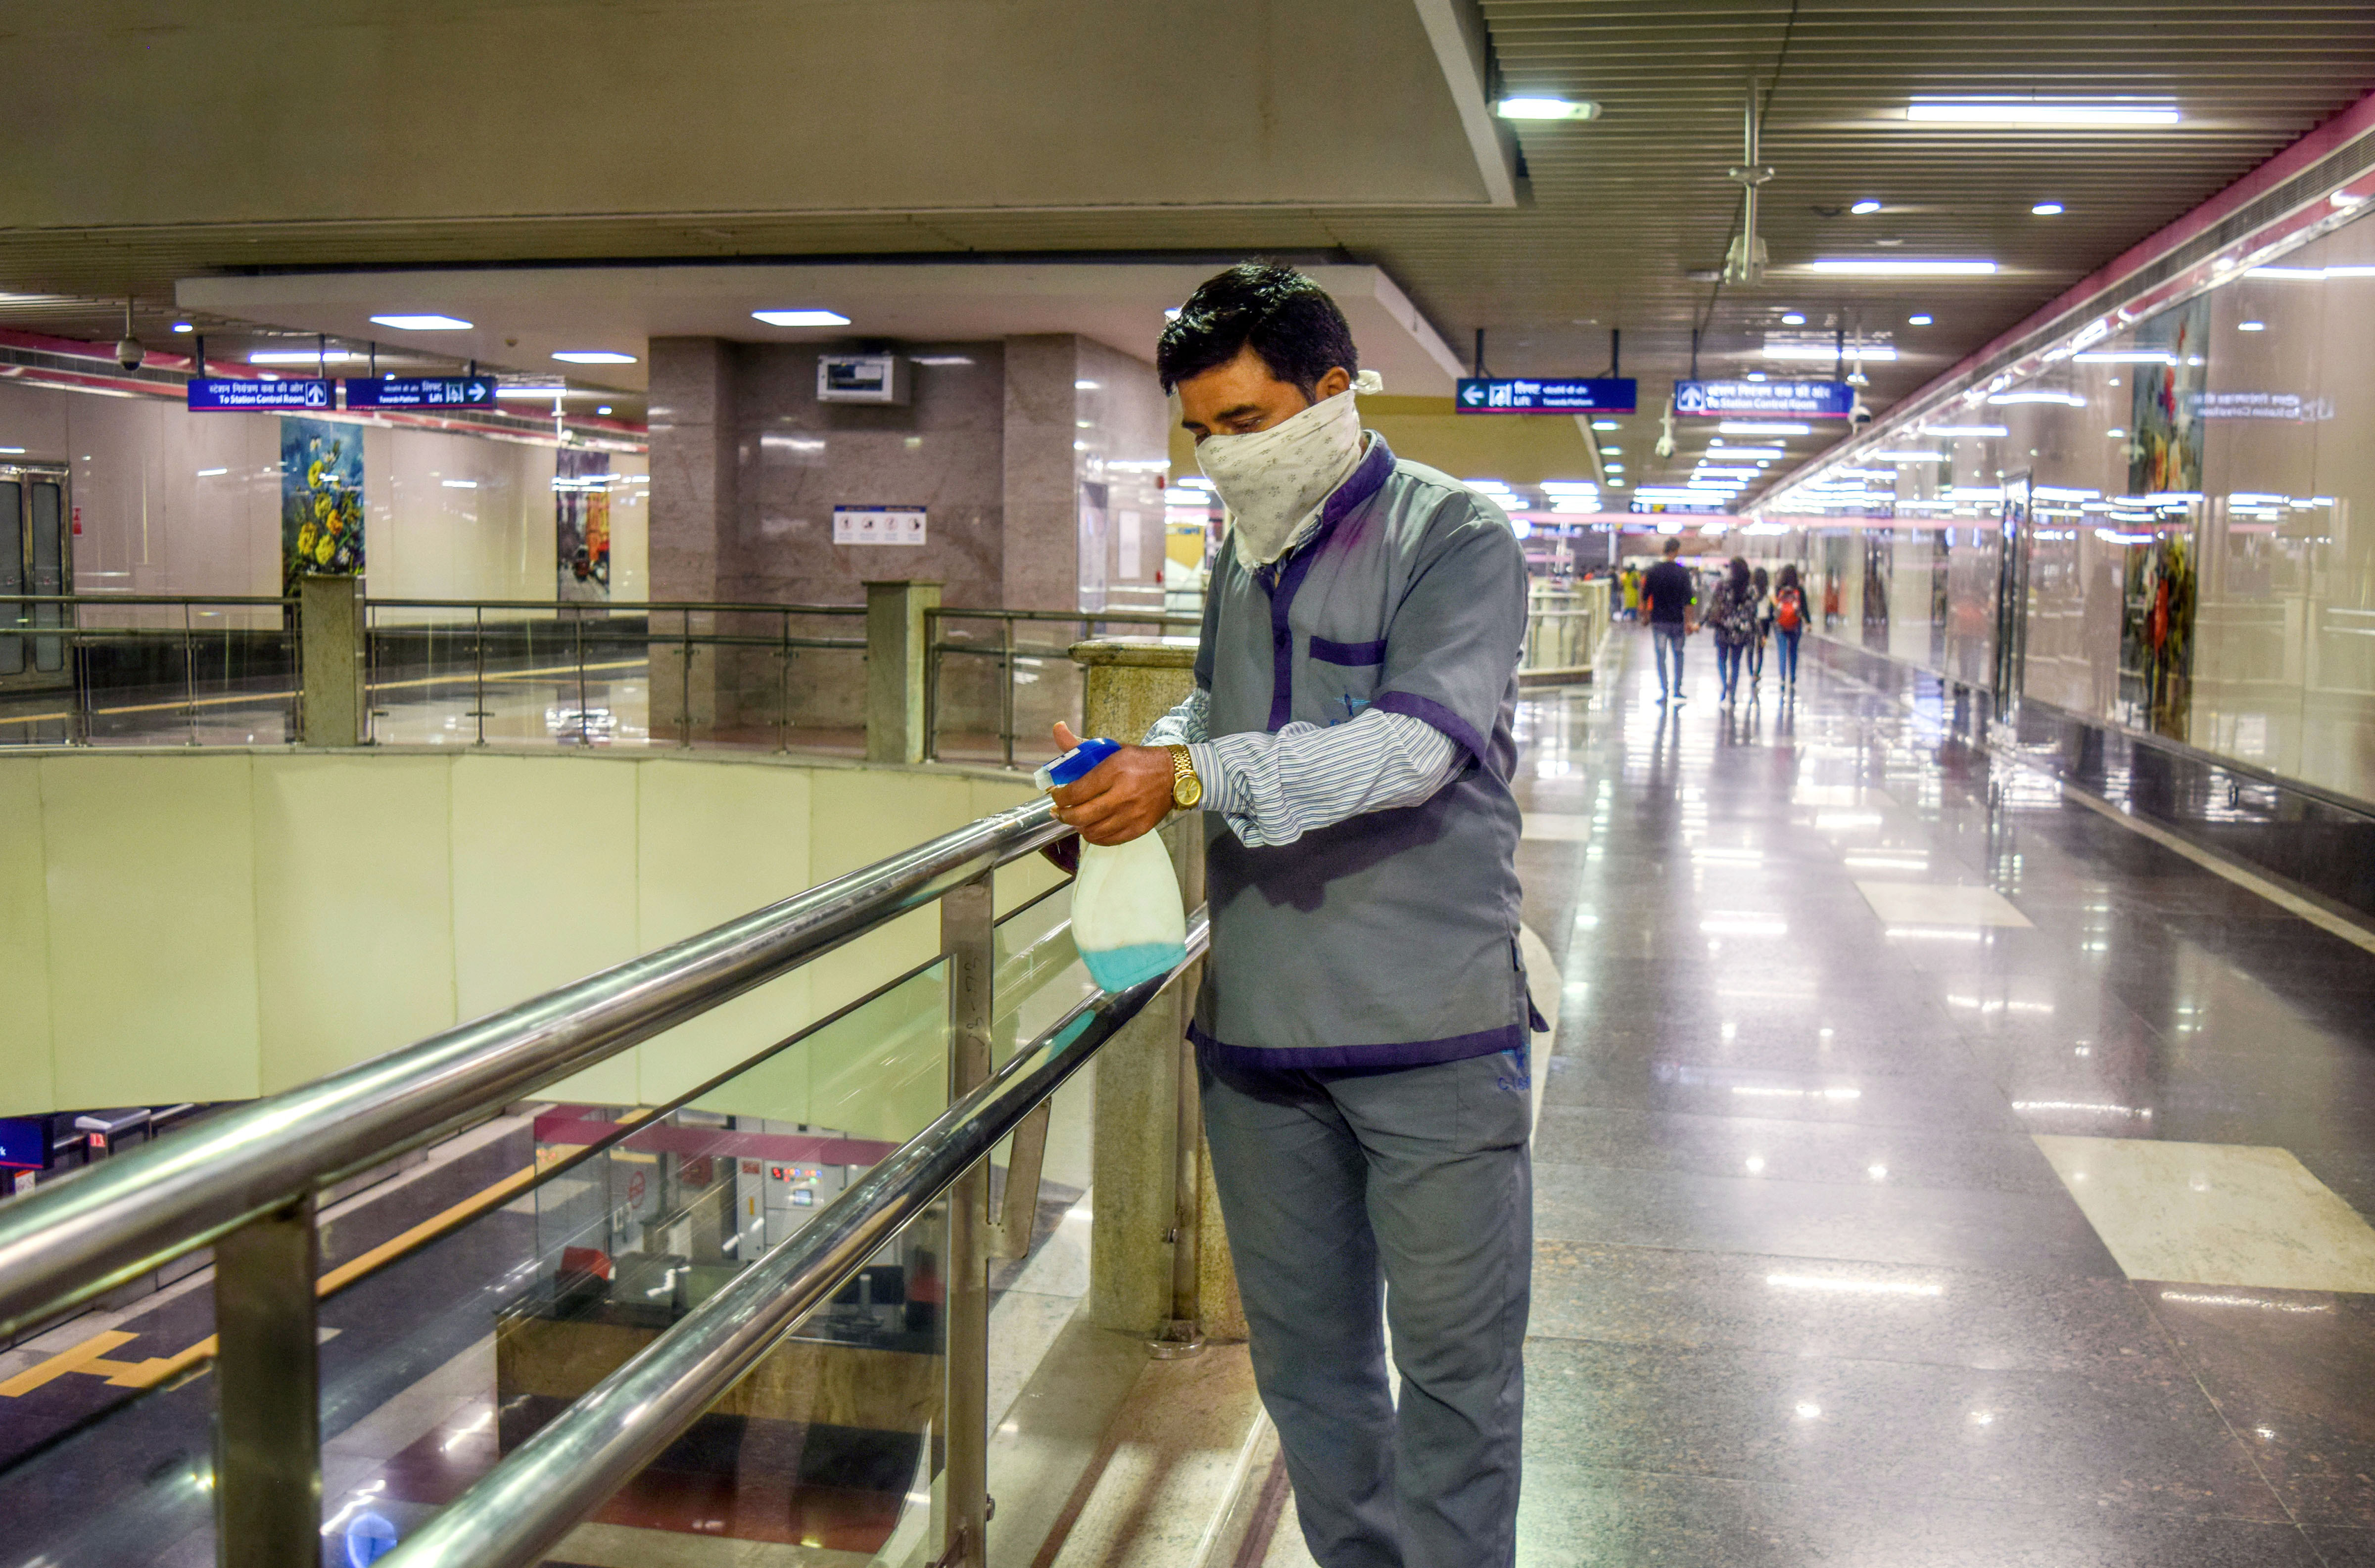 A worker cleans hand railings at pink line metro station to prevent the spread of coronavirus, in New Delhi, Sunday, March 15, 2020